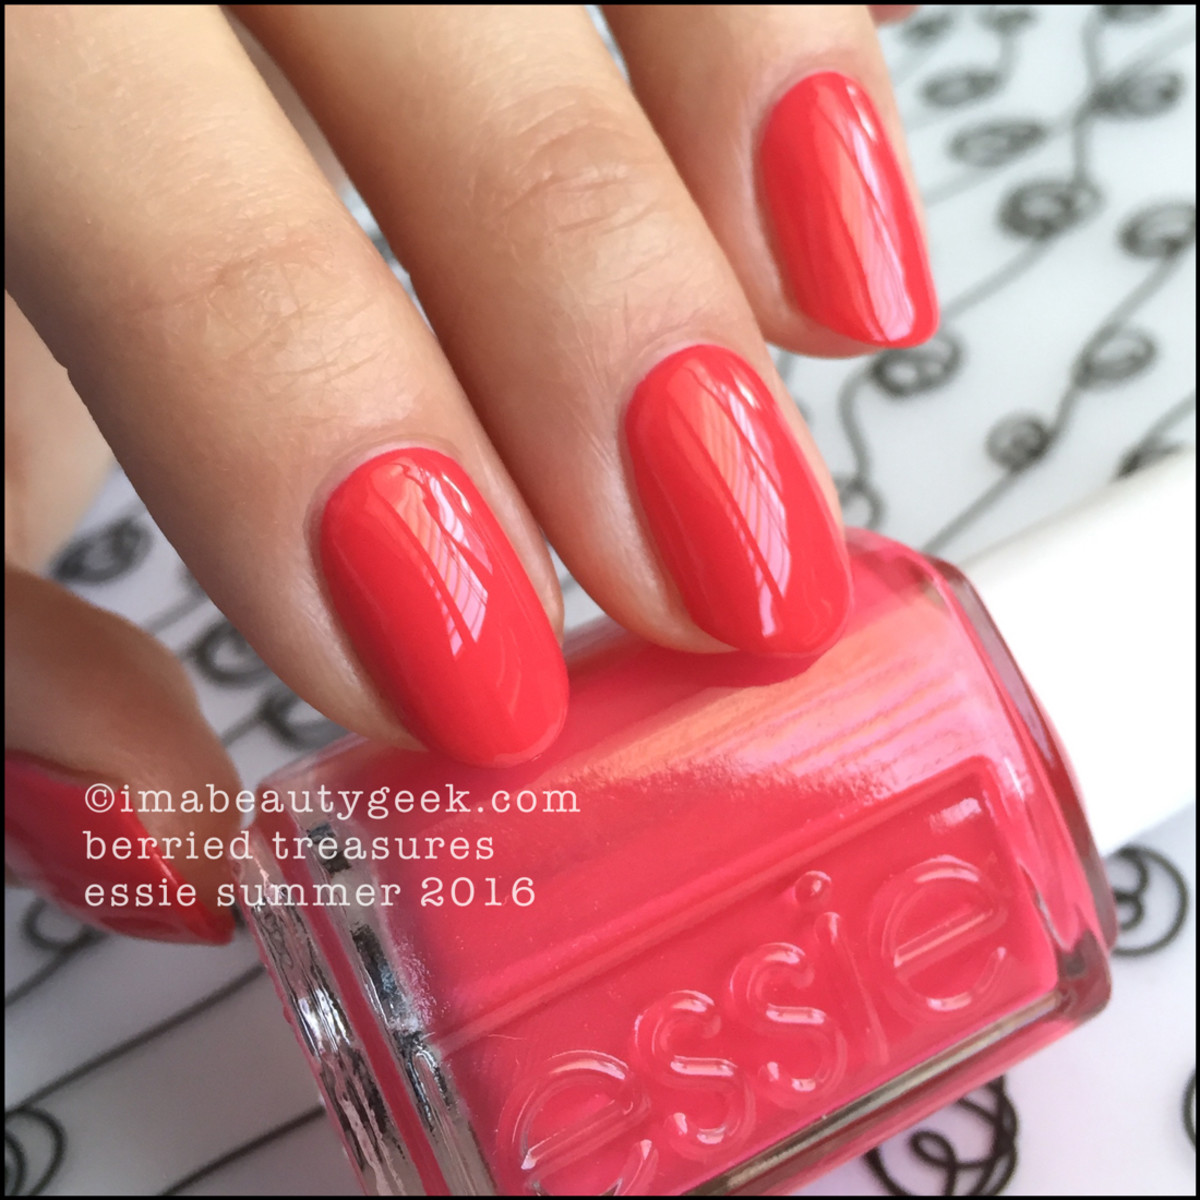 Essie Berried Treasures_Essie Summer 2016 Review Swatches